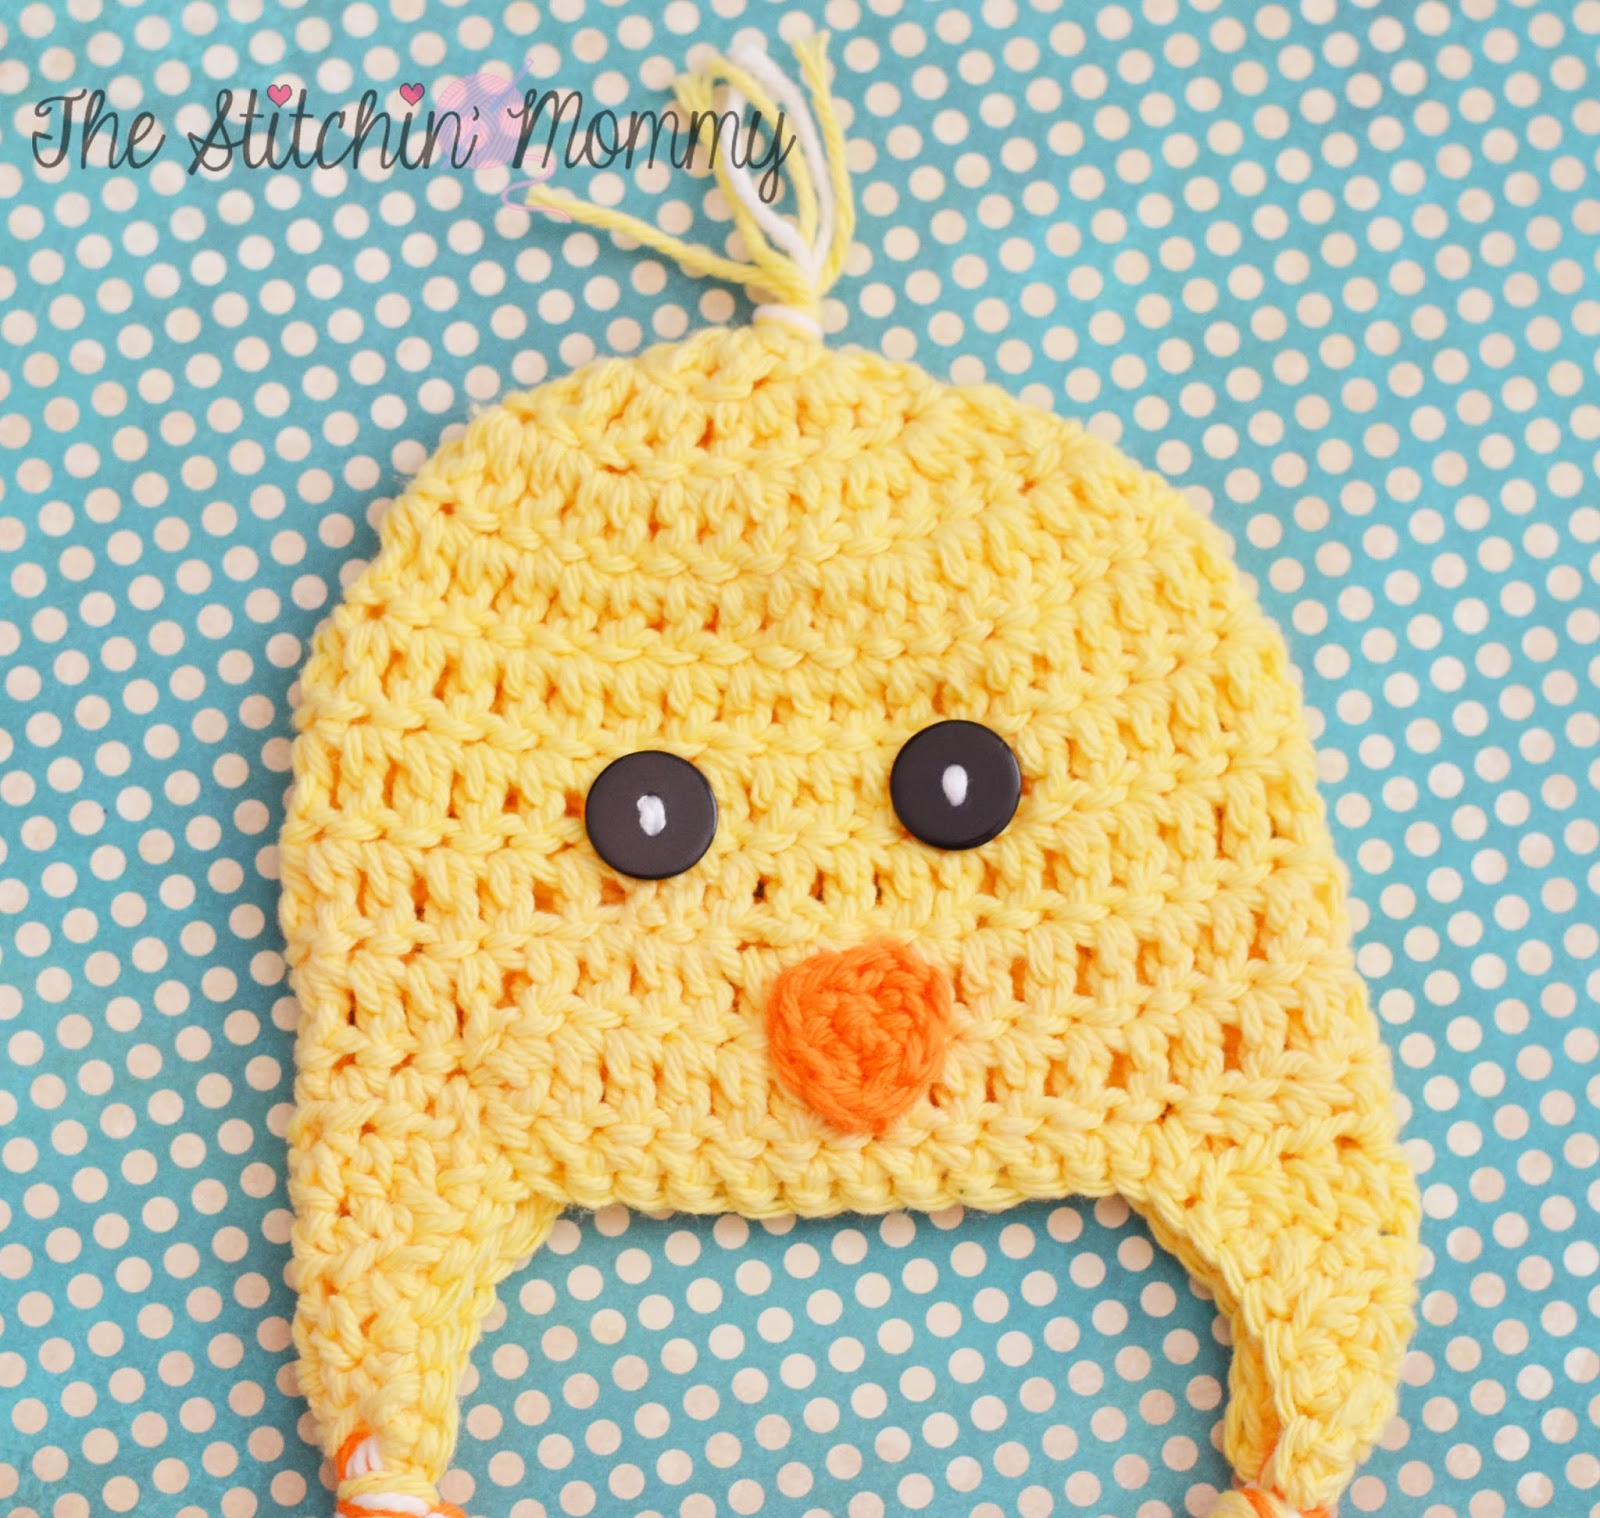 Spring Chick Hat - Free Crochet Pattern by The Stitchin' Mommy www.thestitchinmommy.com